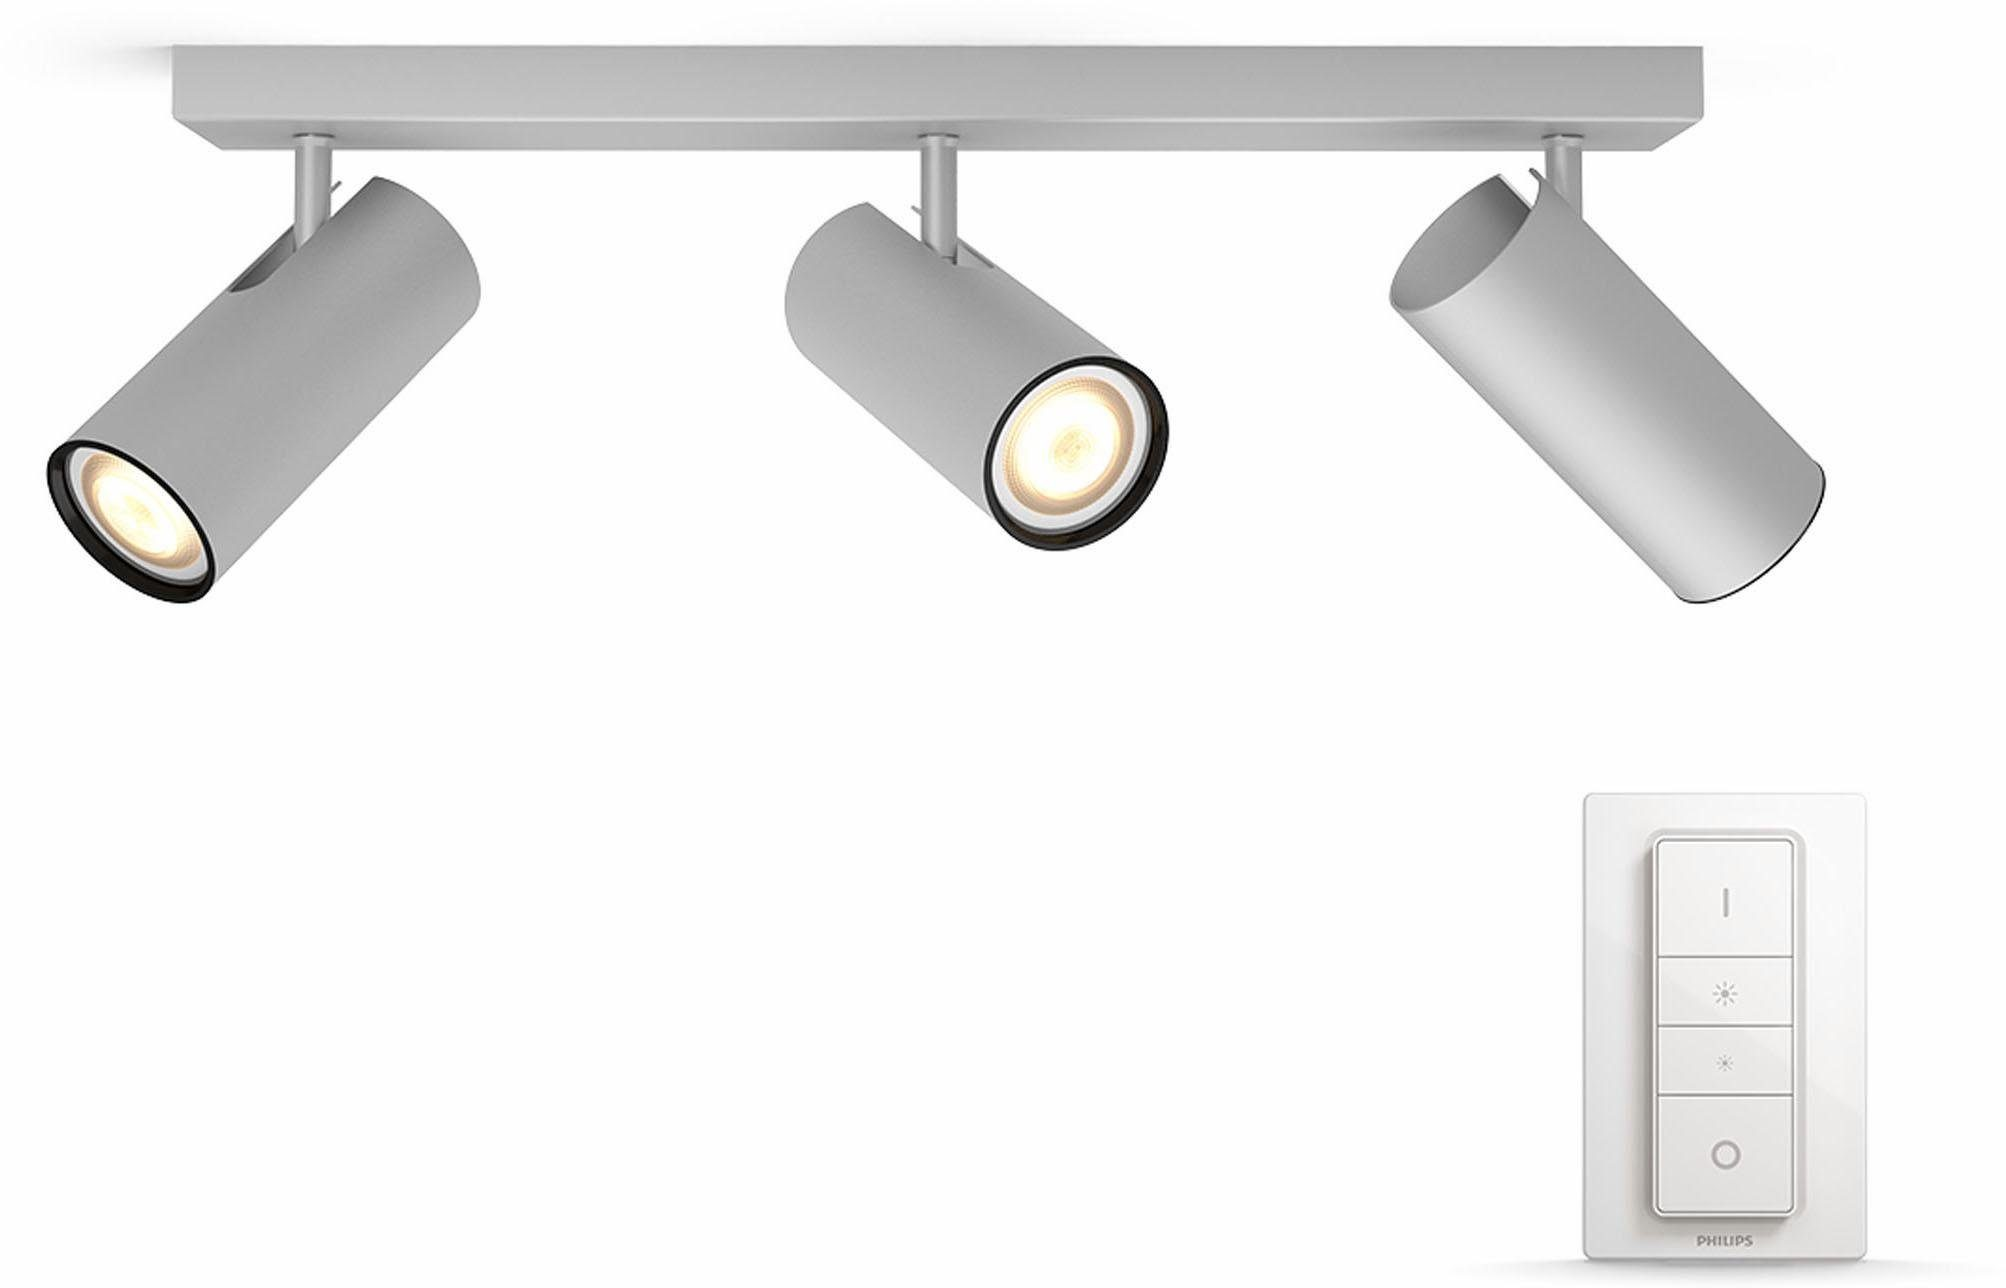 Philips Hue LED Deckenstrahler »Buratto«, 3-flammig, Smart Home